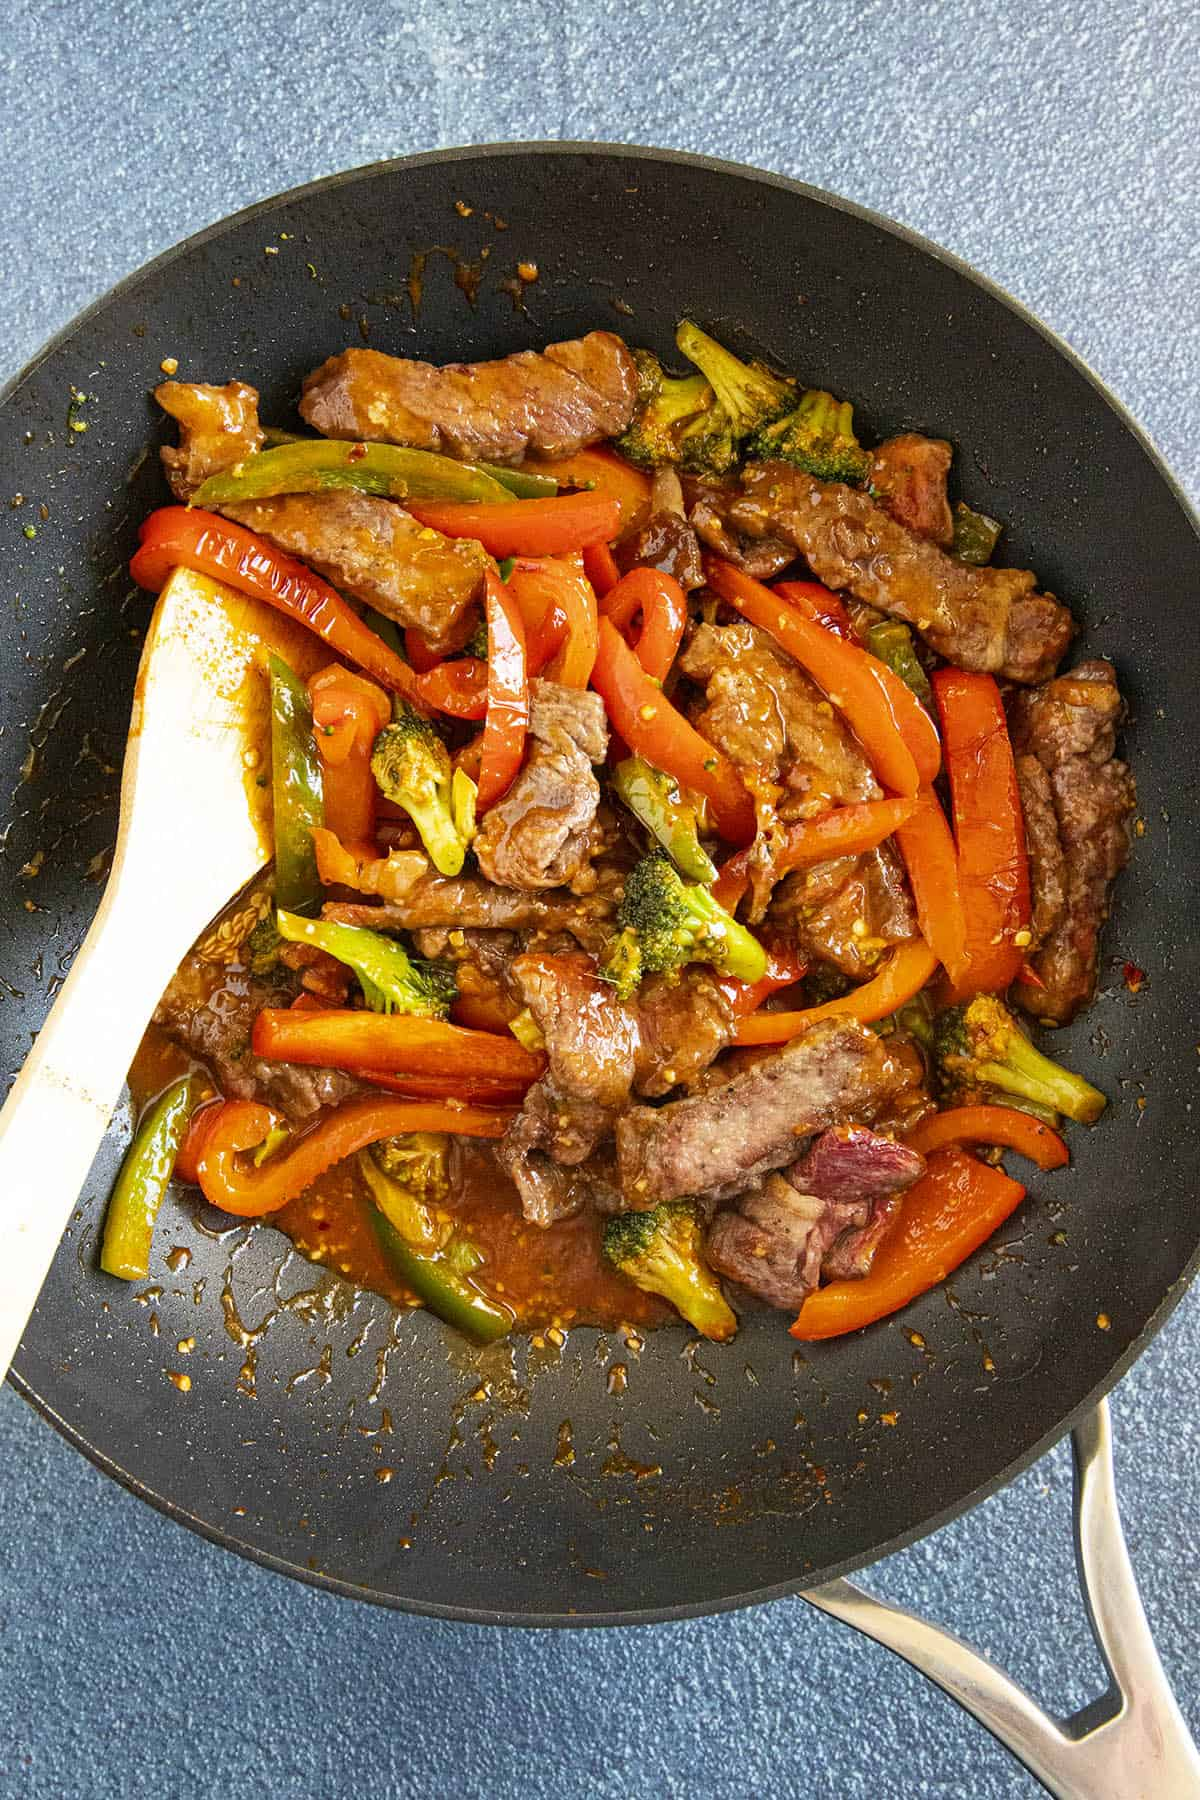 Stirring the peppers and broccoli into the pan with the seared beef